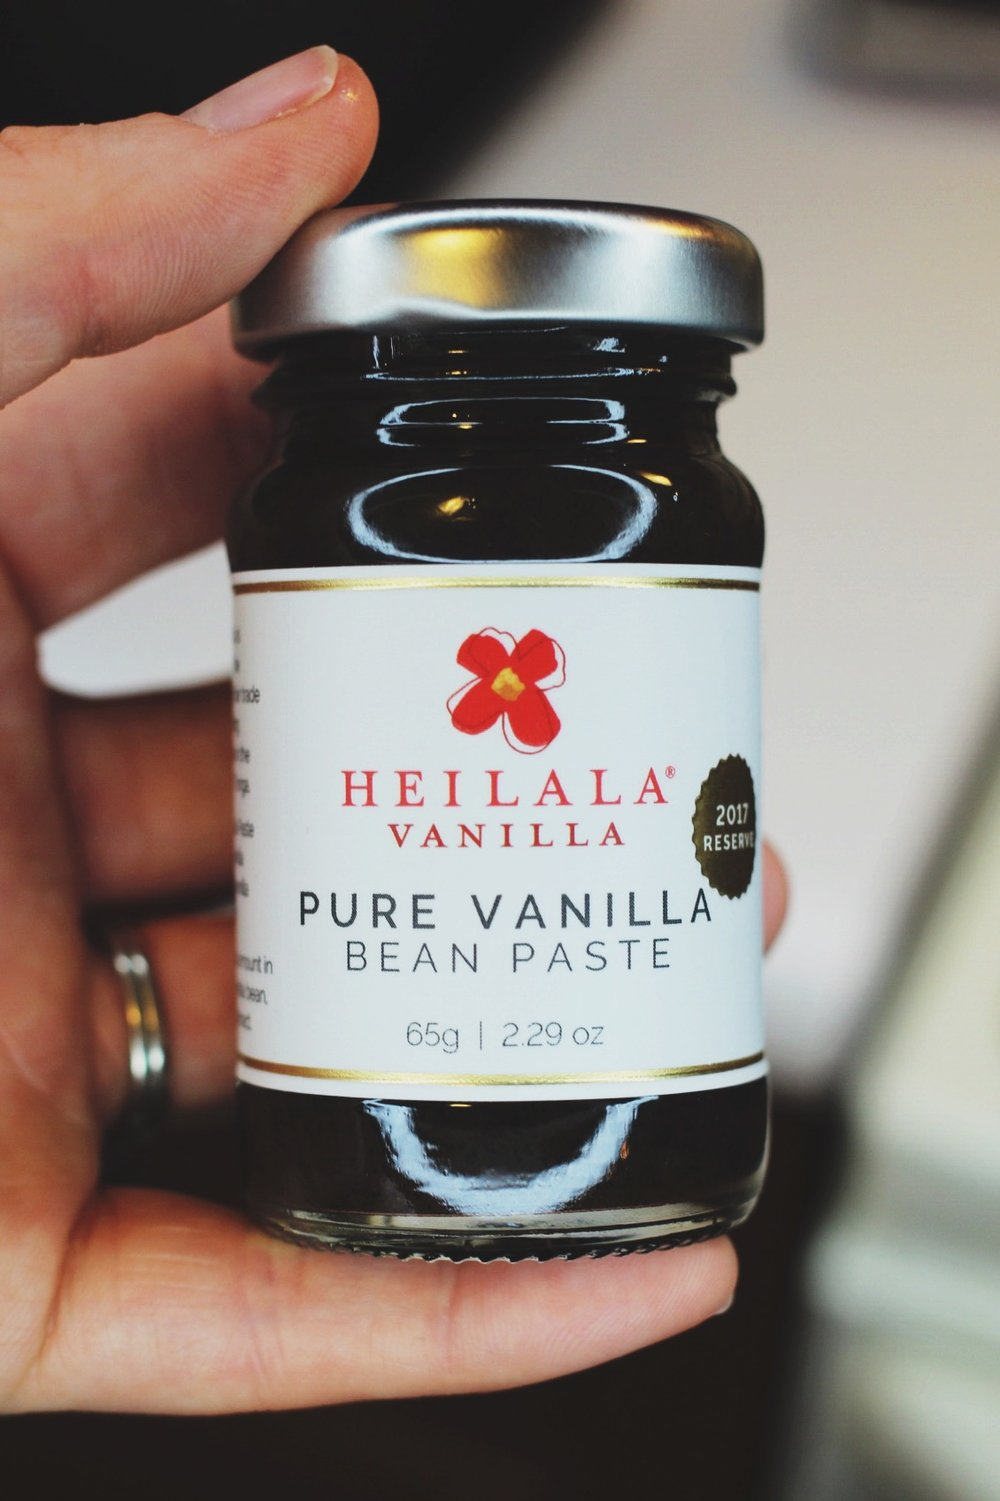 Heilala Vanilla Bean Paste